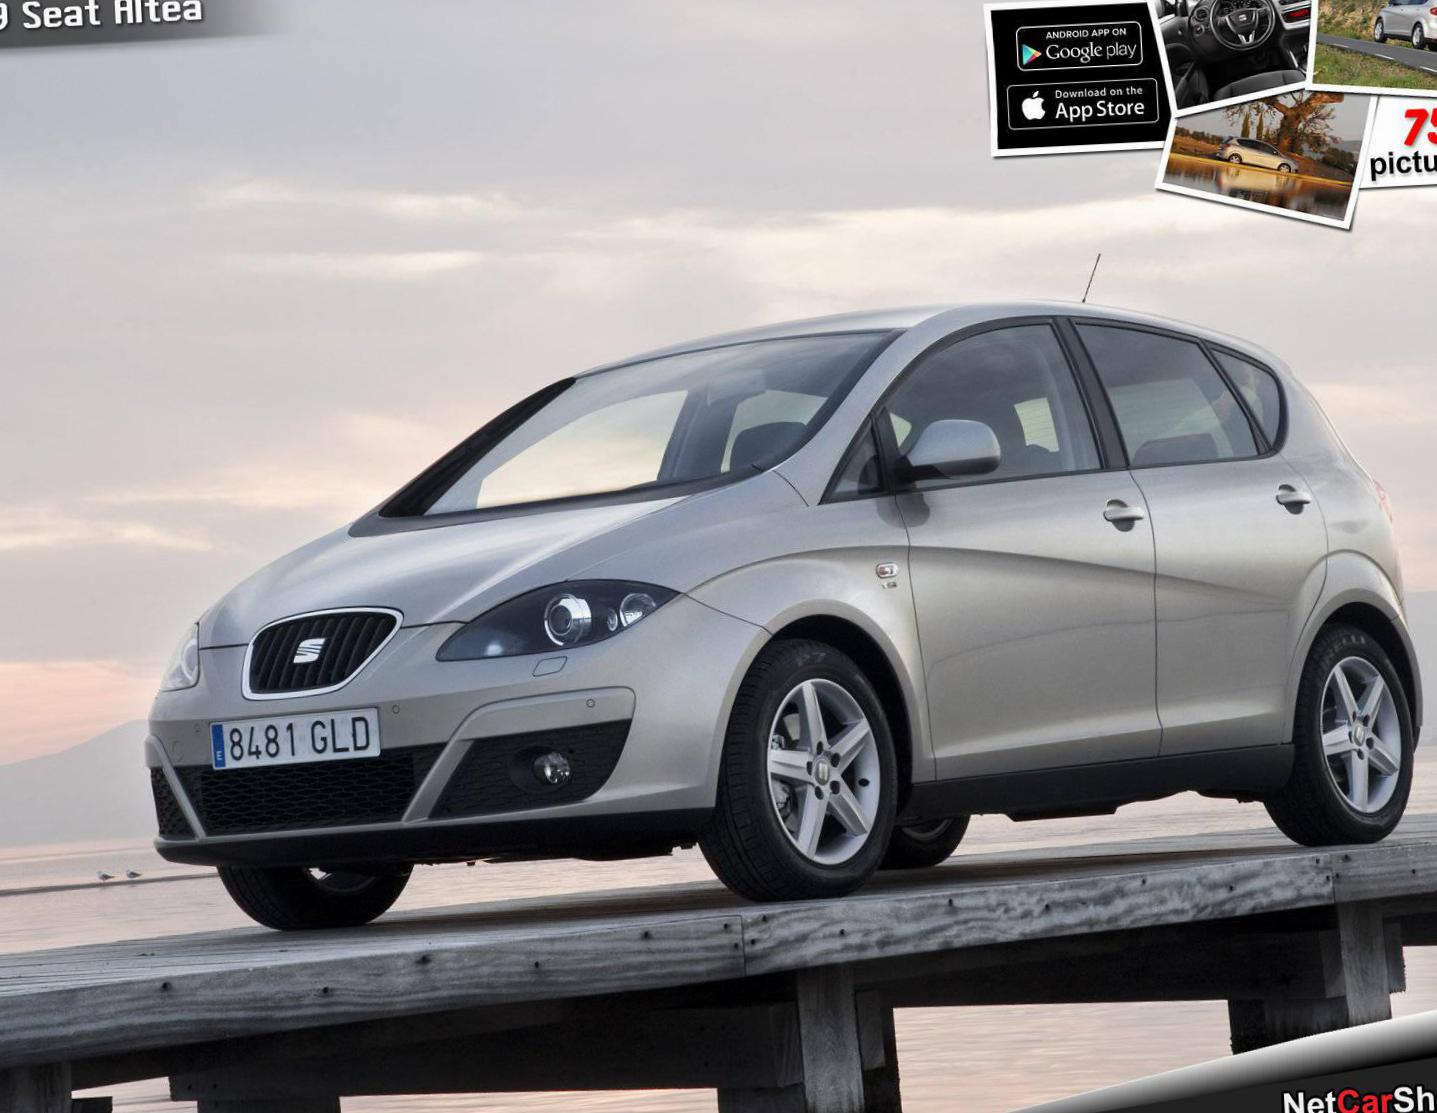 Seat Altea XL usa hatchback